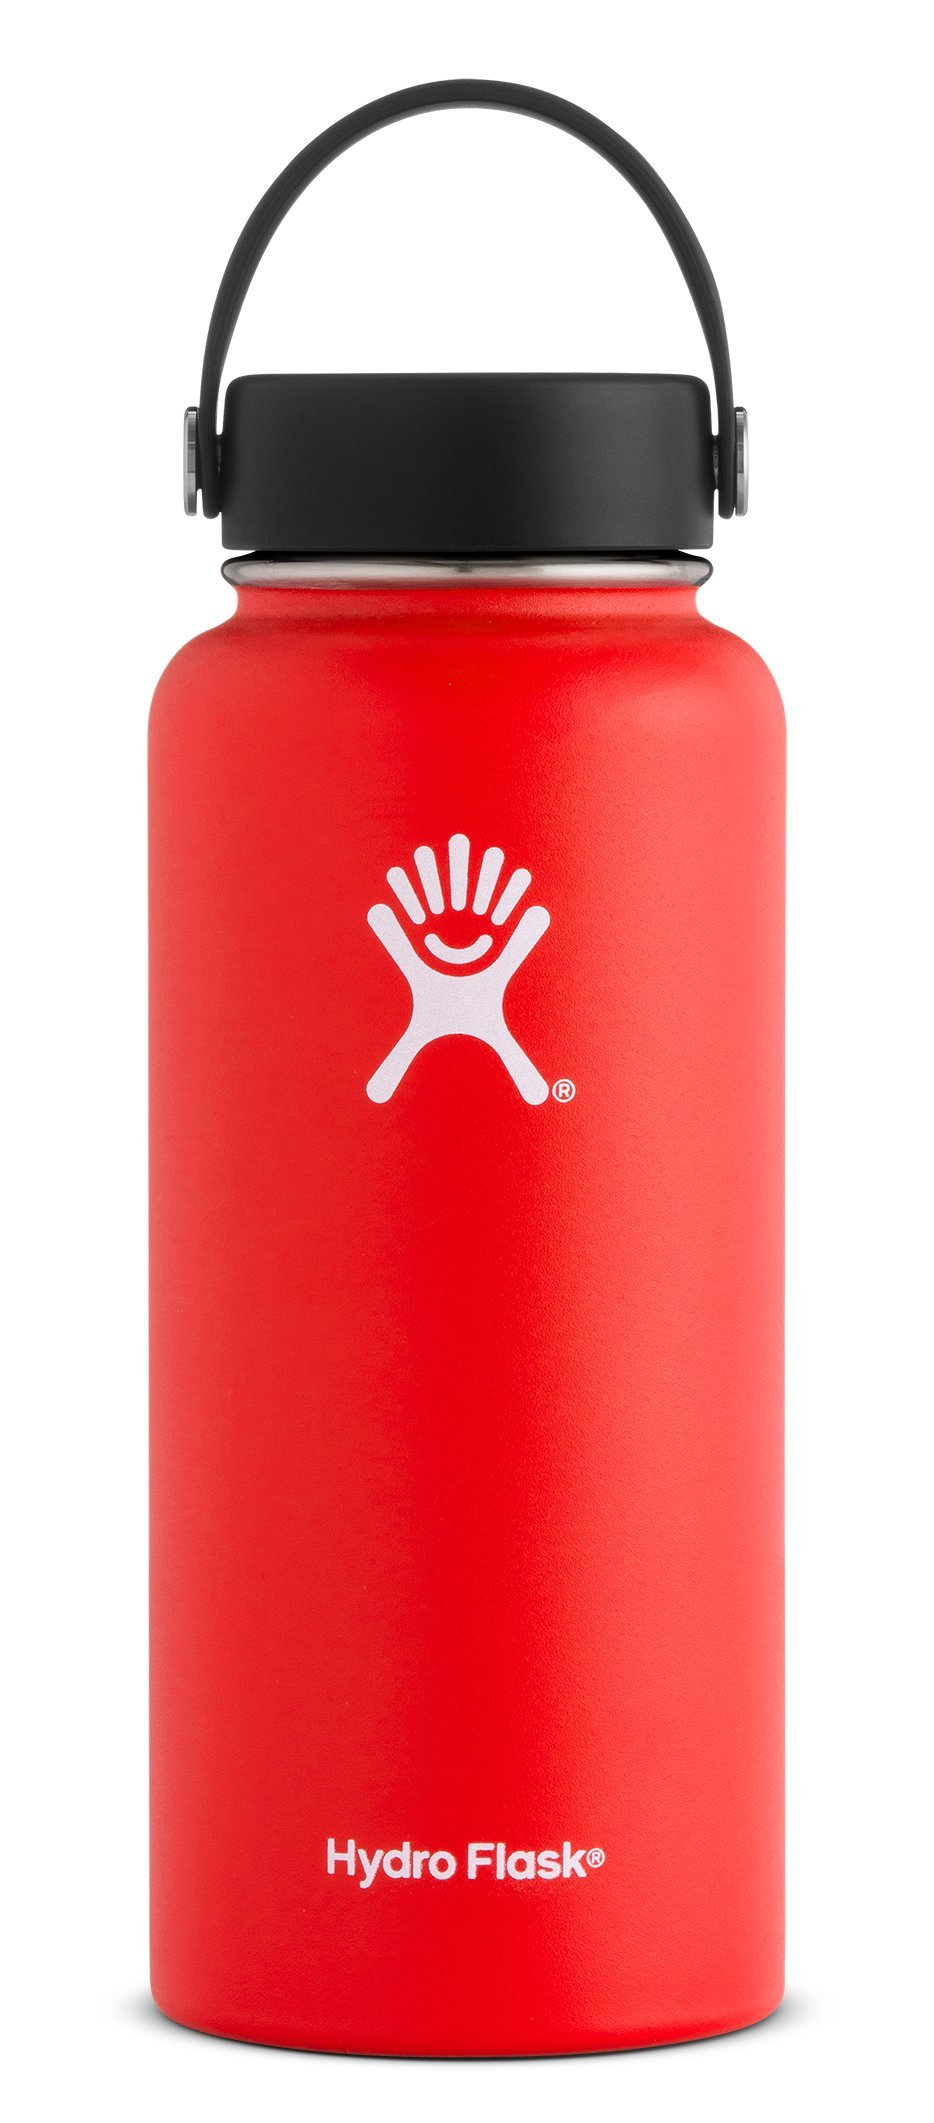 Hydro Flask 32 oz Double Wall Vacuum Insulated Stainless Steel Leak Proof Sports Water Bottle, Wide Mouth with BPA Free Flex Cap, Lava